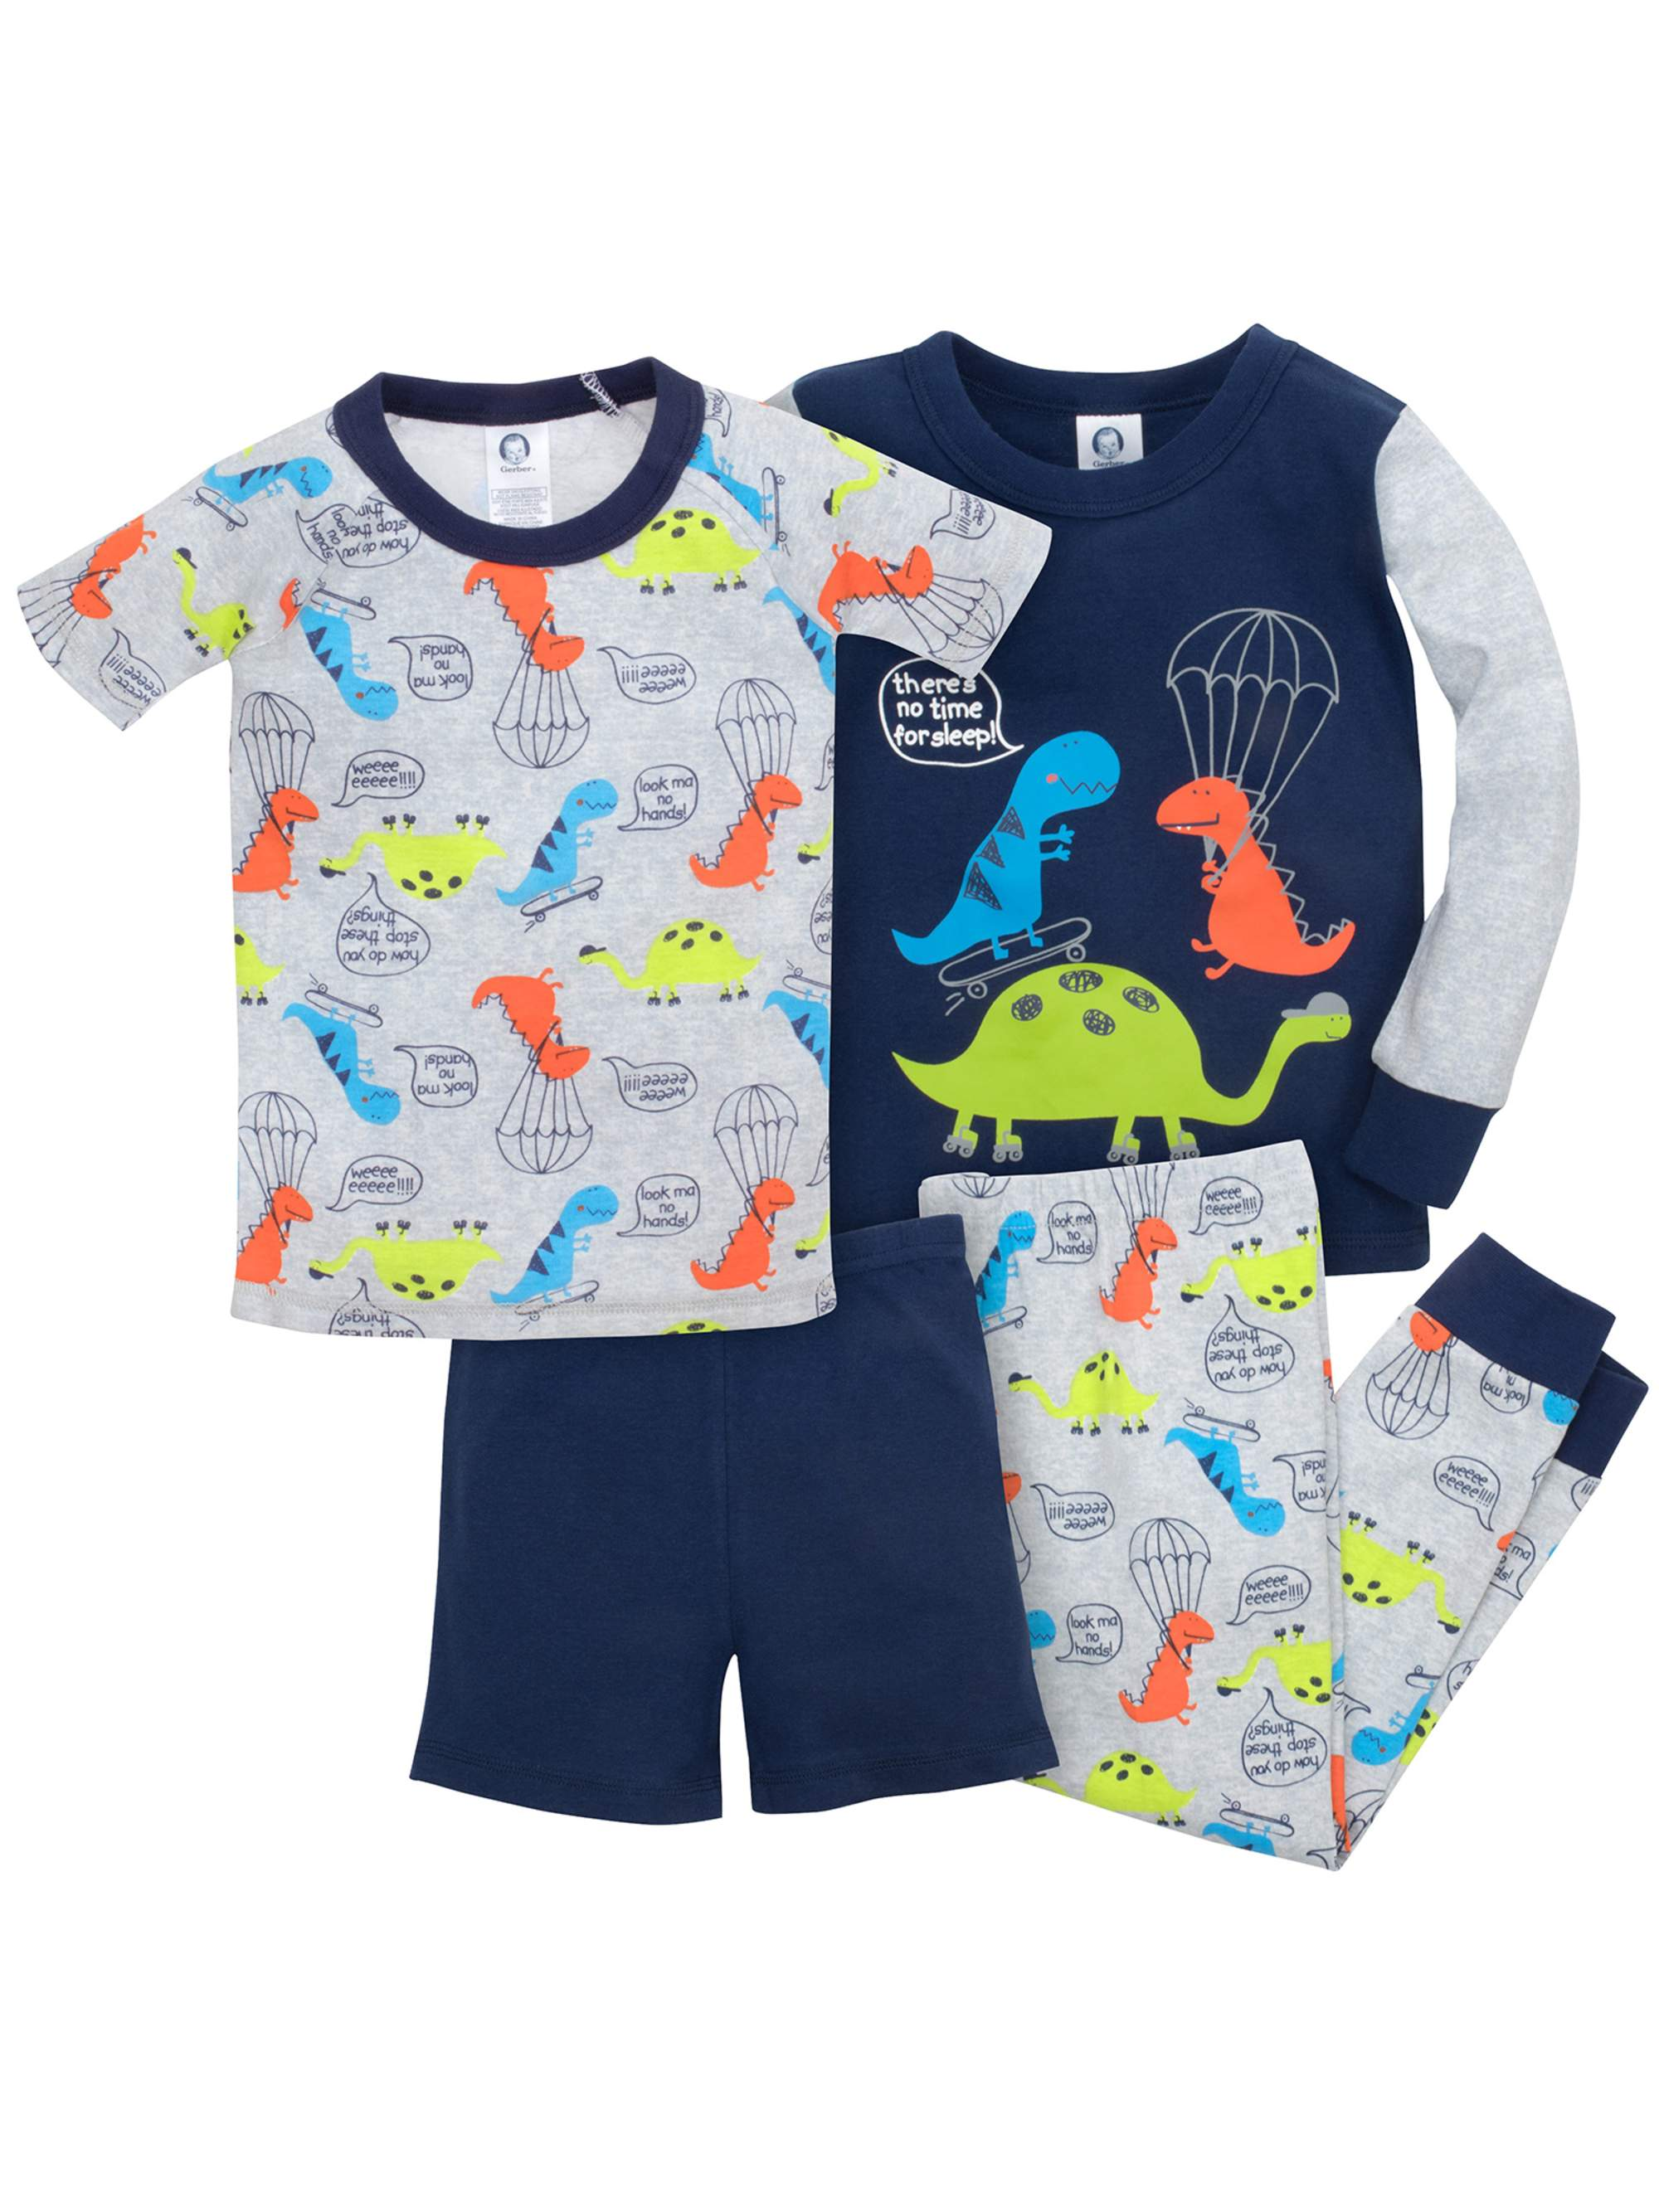 Baby Toddler Boy Mix 'n Match Snug Fit Cotton Pajamas, 4pc Outfit Set